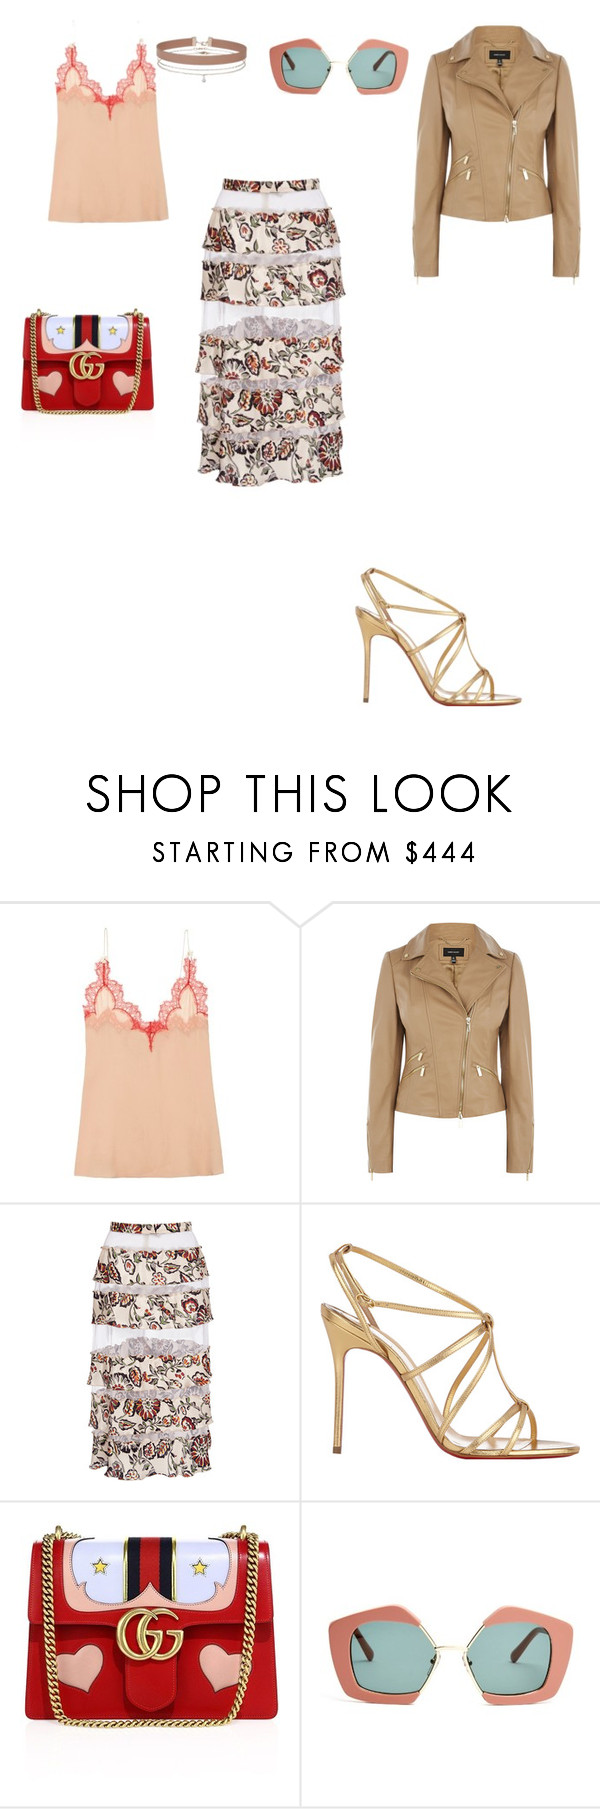 """Untitled #3222"" by anamaria-zgimbau ❤ liked on Polyvore featuring Gucci, Rodarte, Christian Louboutin, Marni and Miss Selfridge"